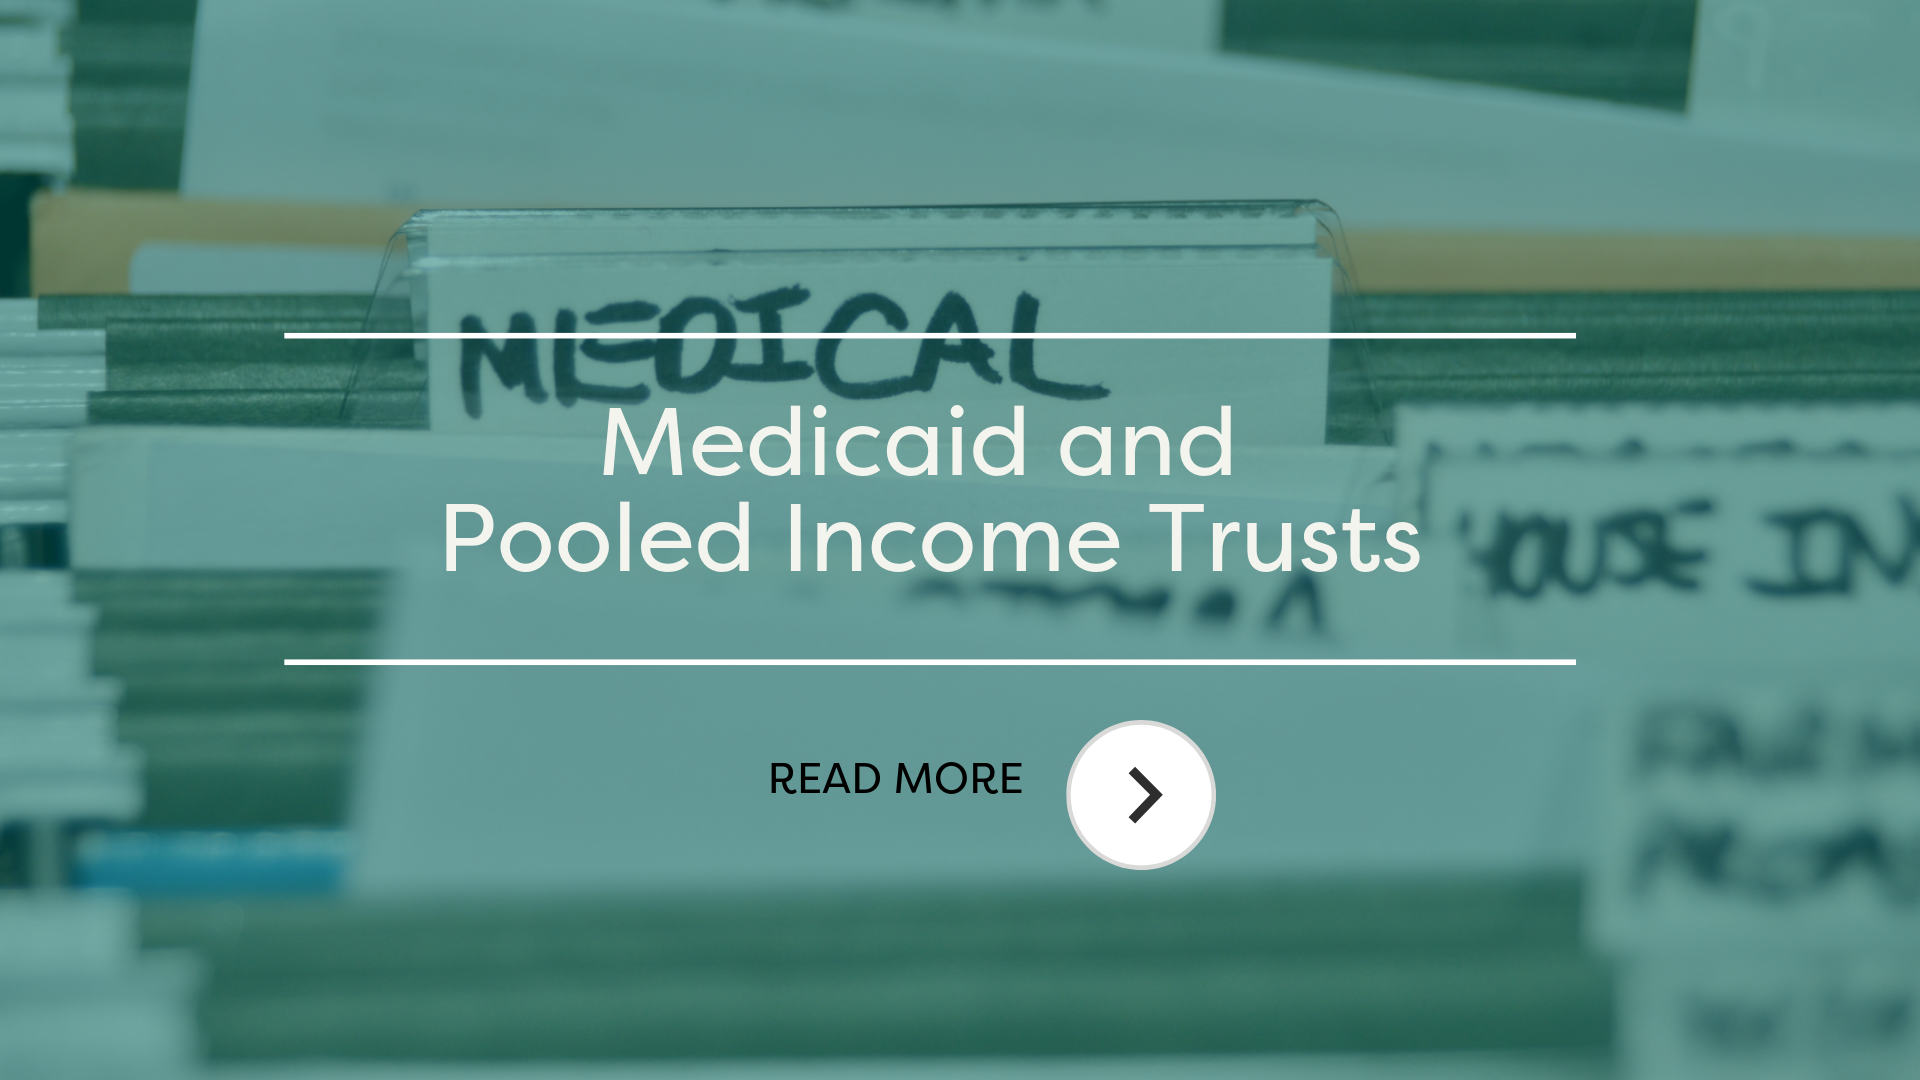 Pooled Income Trust